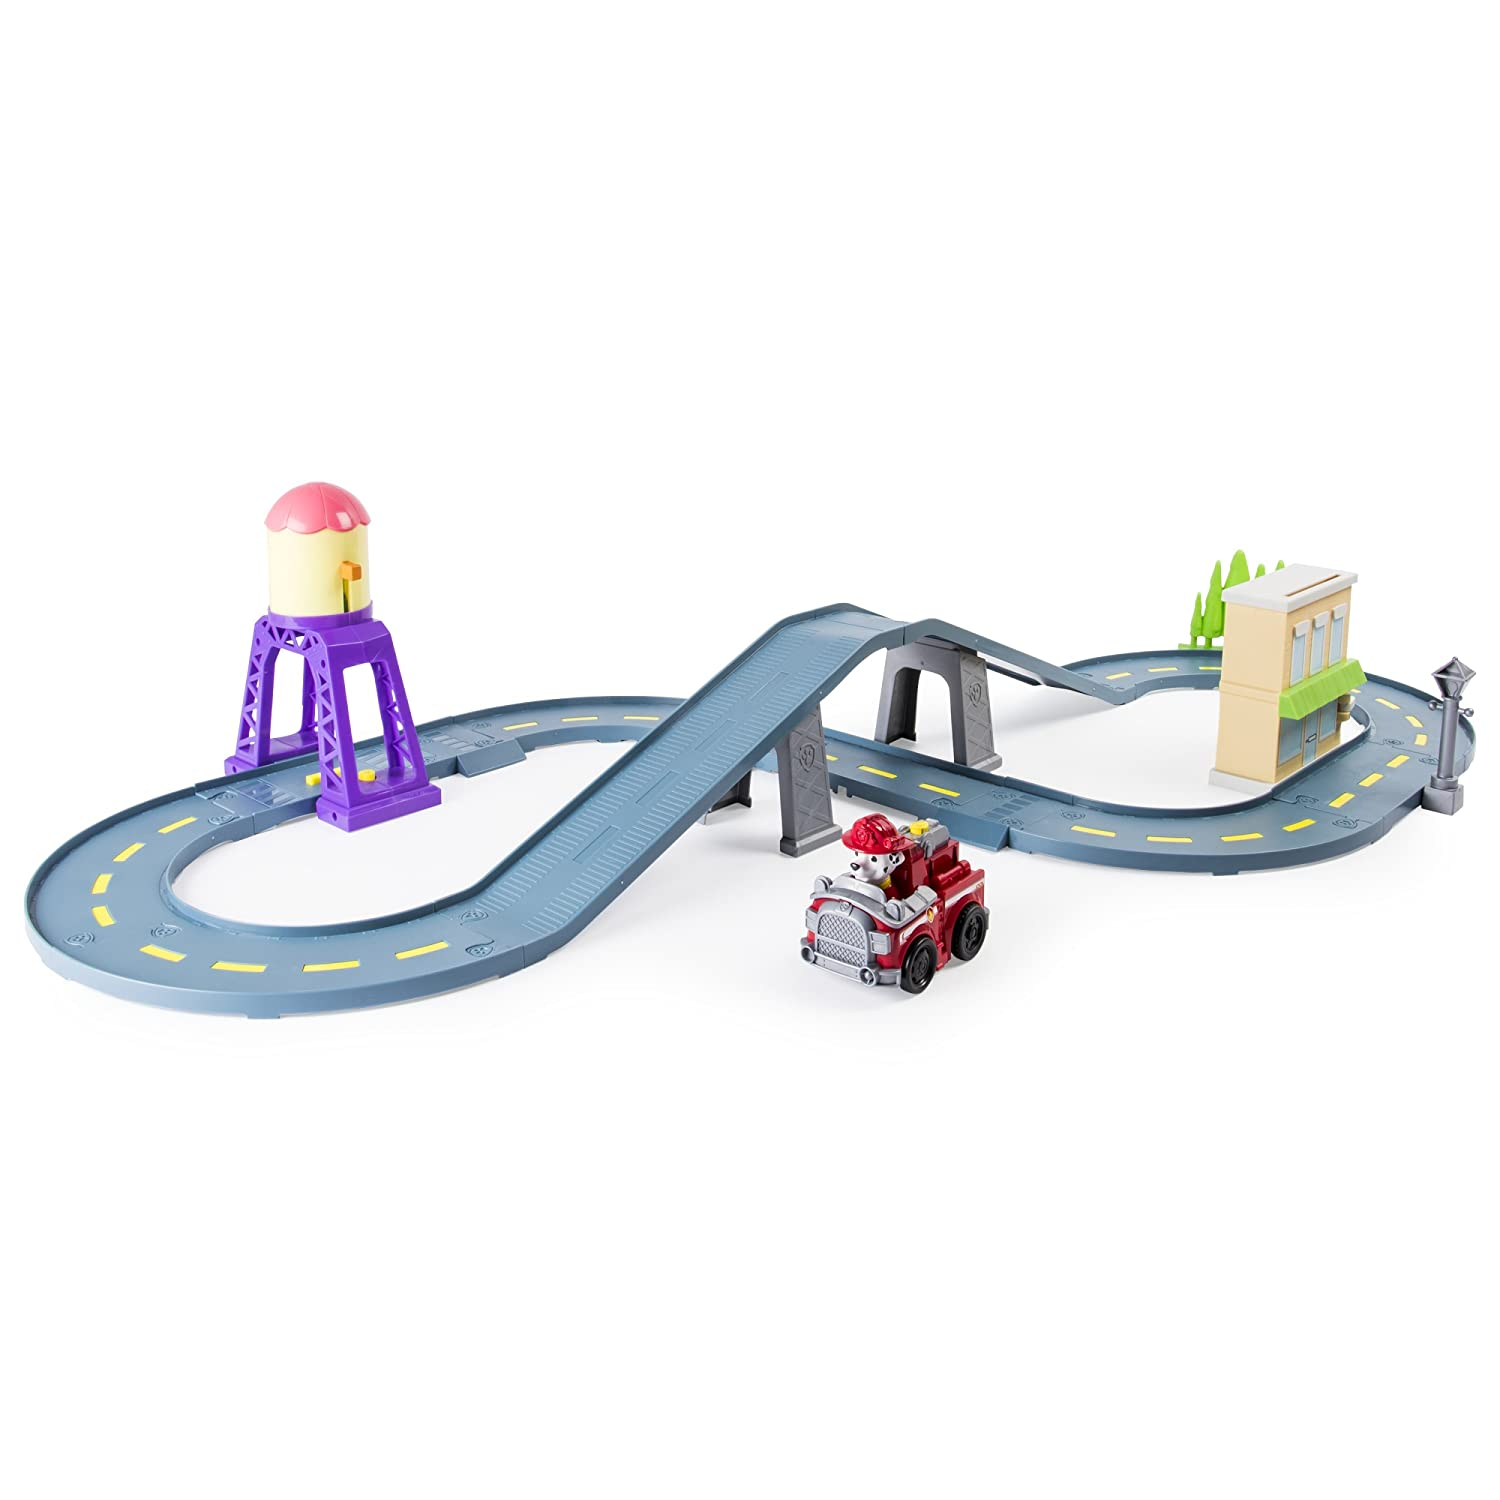 Paw Patrol Roll Patrol – Marshall's Town Rescue Track Set with Exclusive Motorized Vehicle with Lights and Sounds Spin Master 20088522